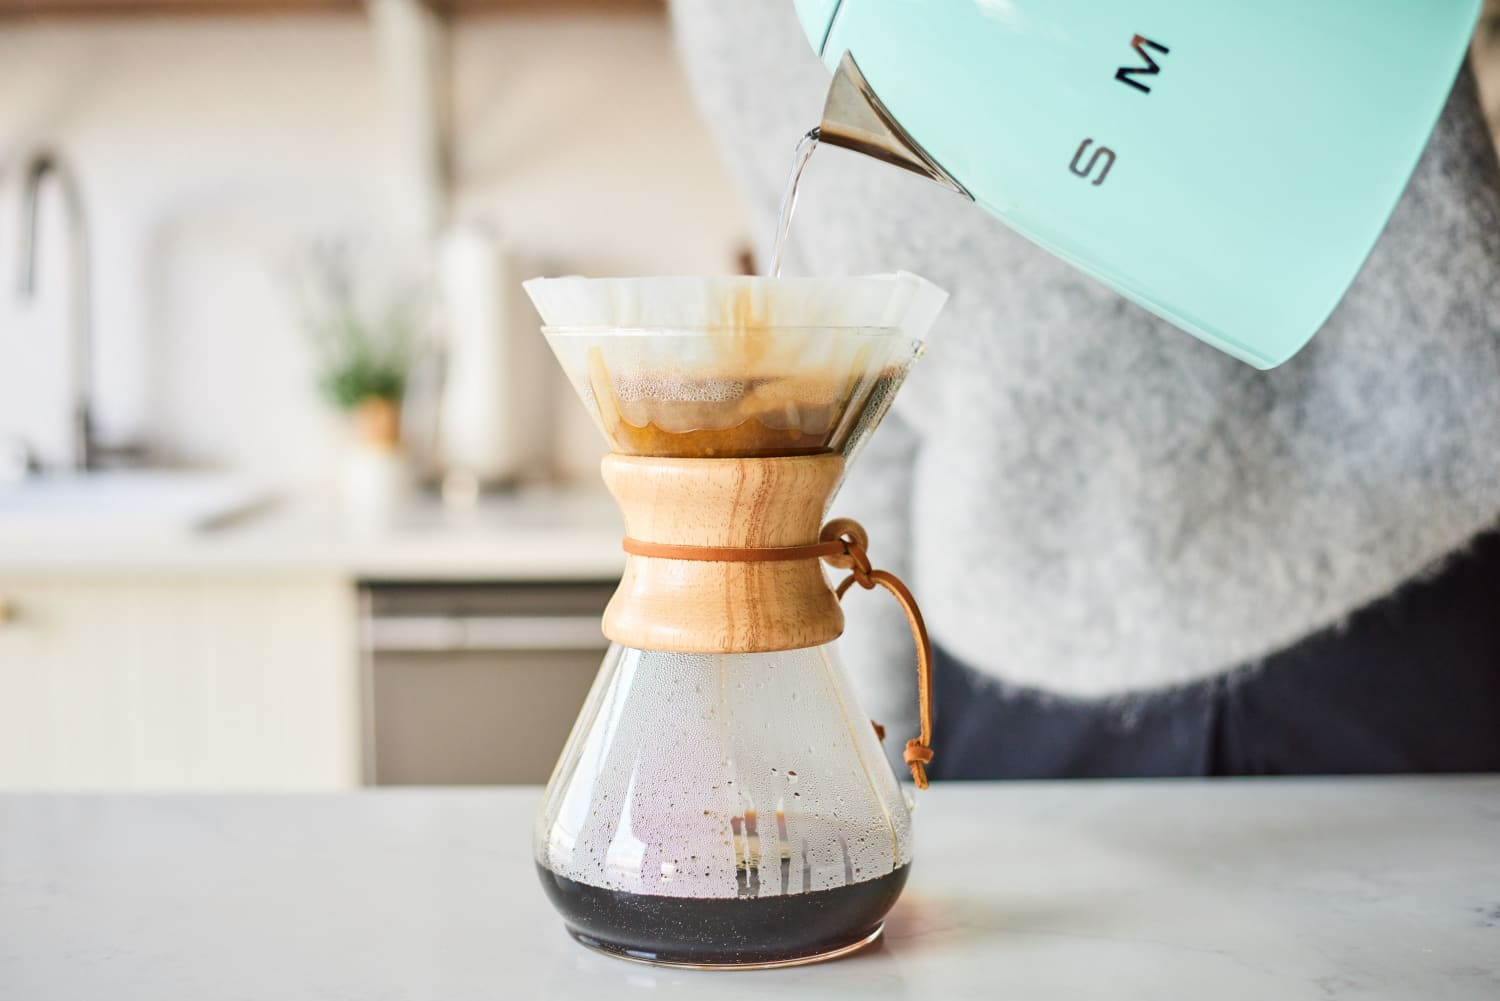 The Best Pour-Over Coffee Makers for Barista-Level Brews at Home